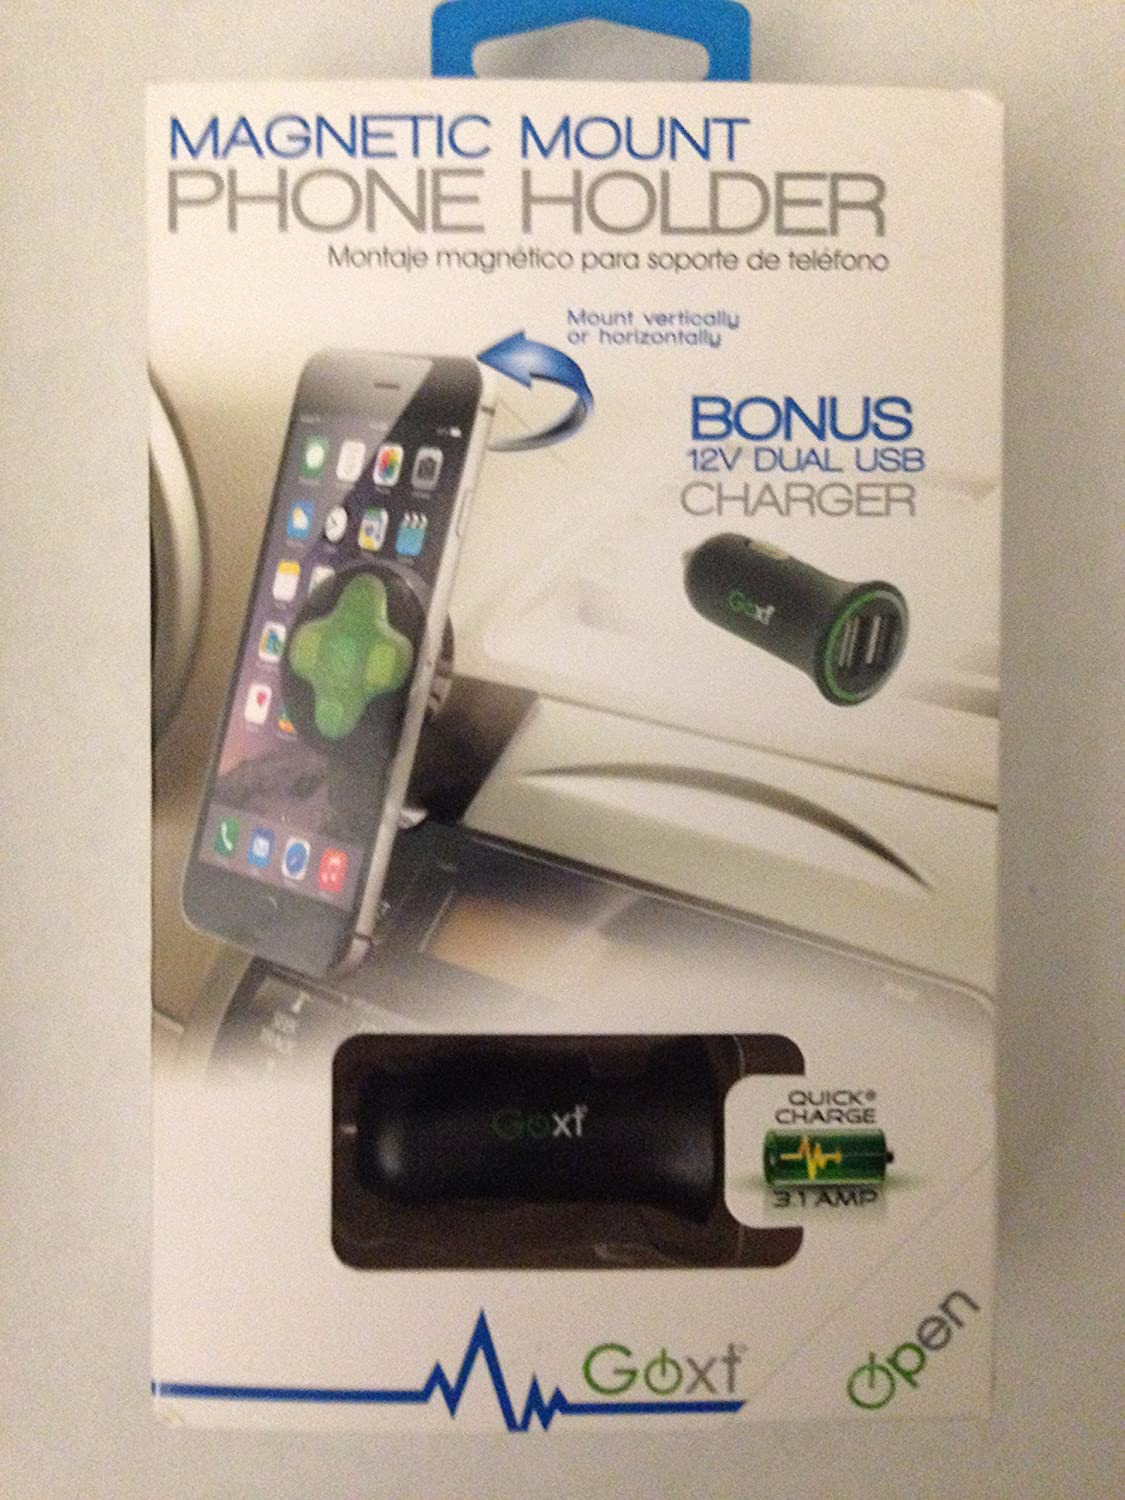 Goxt Magnetic Mount Phone Holder Custom Accessories Inc 4353179769